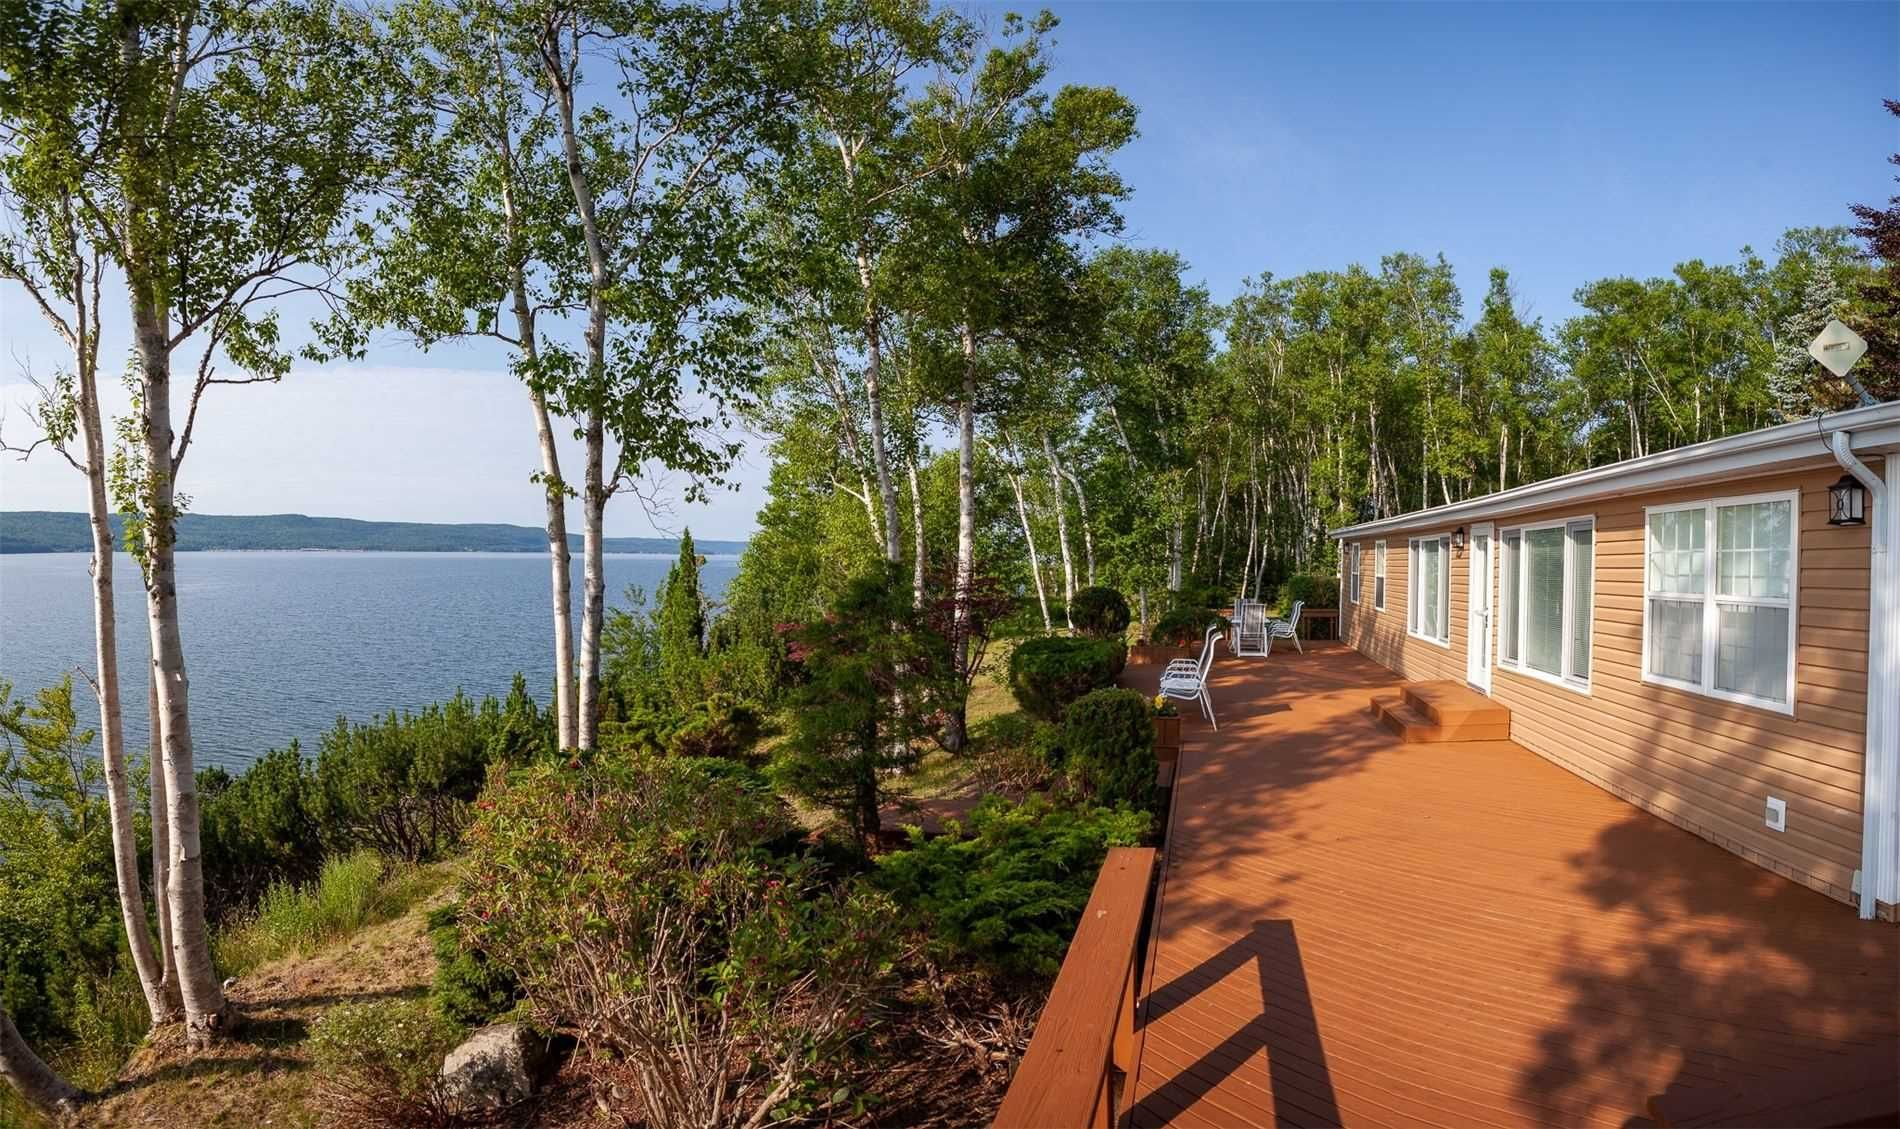 Main Photo: 2555 Eskasoni Road in Out of Area: House (Bungalow) for sale : MLS®# X5312069